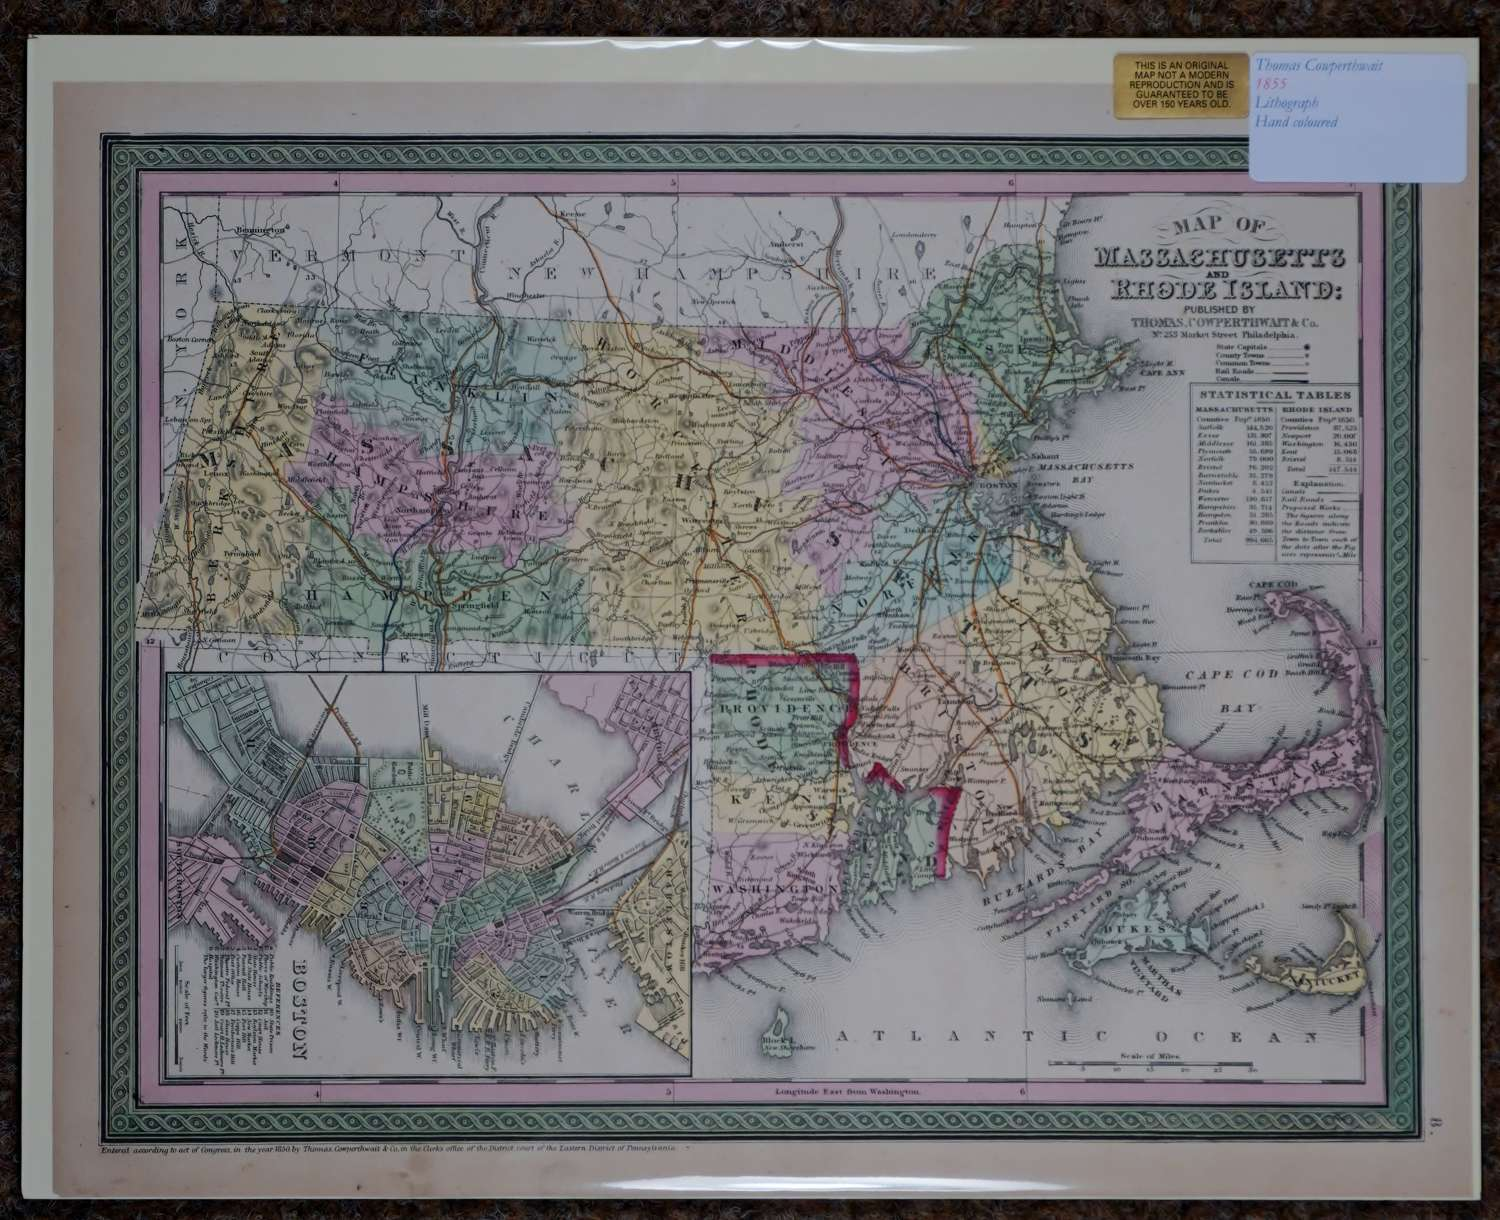 Map of  Massachusetts and Rhode Island by Thomas Cowperthwait & Co